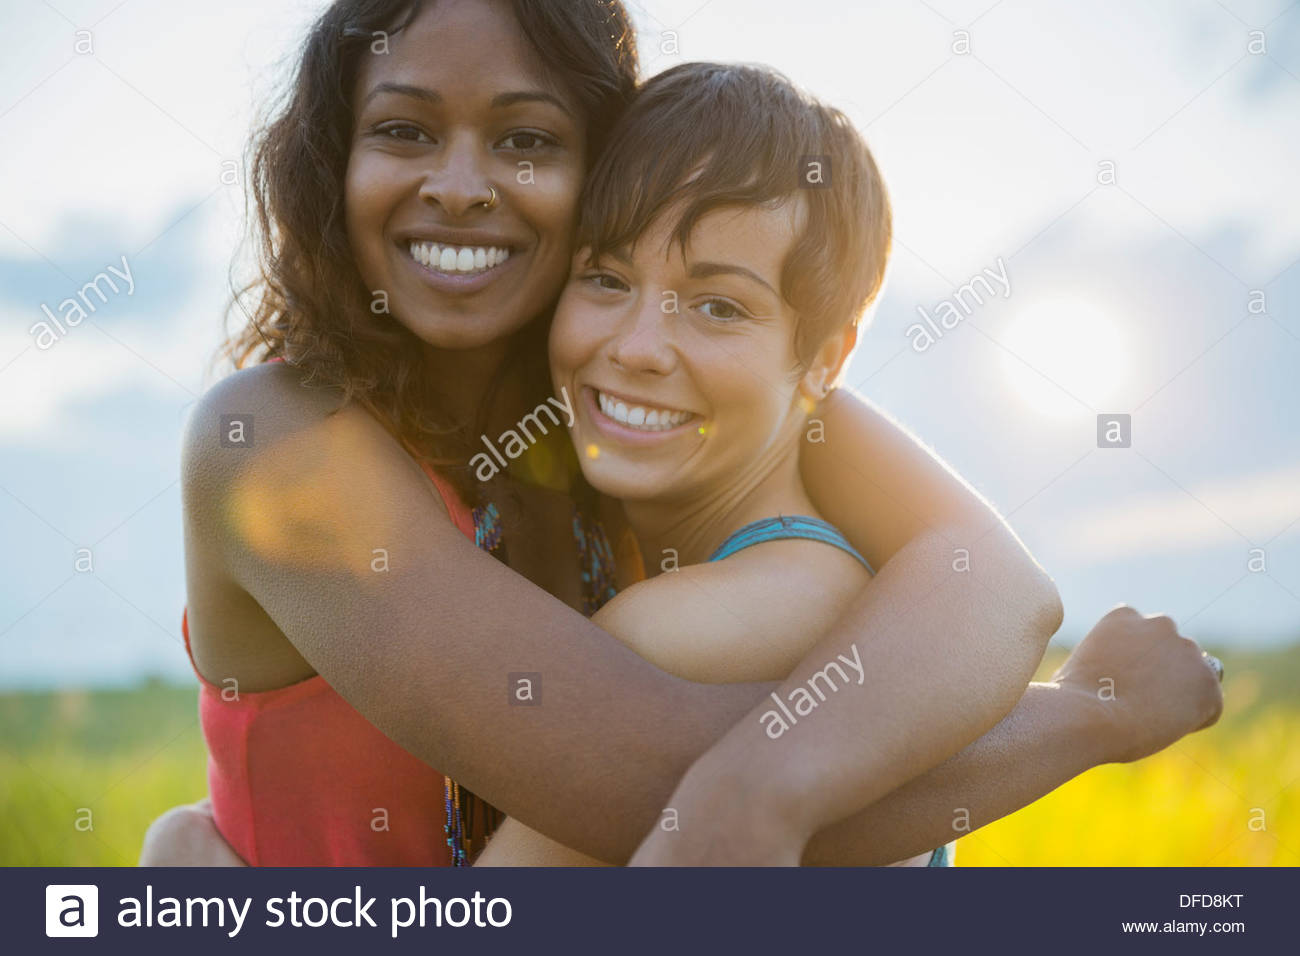 Portrait of young women embracing outdoors - Stock Image